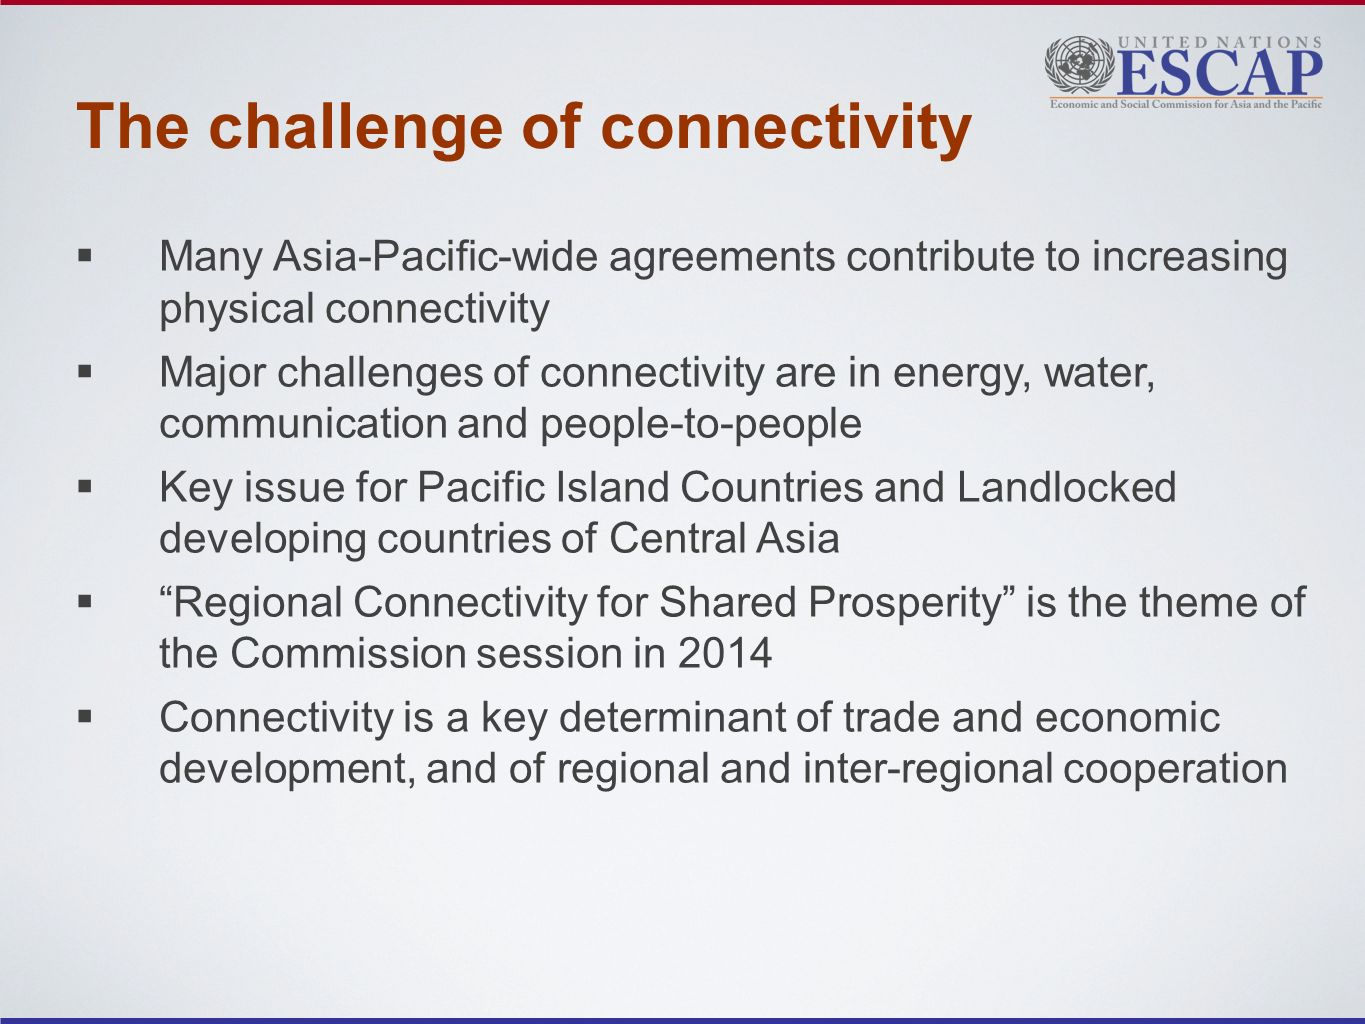 The challenge of connectivity Many Asia-Pacific-wide agreements contribute to increasing physical connectivity Major challenges of connectivity are in energy, water, communication and people-to-people Key issue for Pacific Island Countries and Landlocked developing countries of Central Asia Regional Connectivity for Shared Prosperity is the theme of the Commission session in 2014 Connectivity is a key determinant of trade and economic development, and of regional and inter-regional cooperation